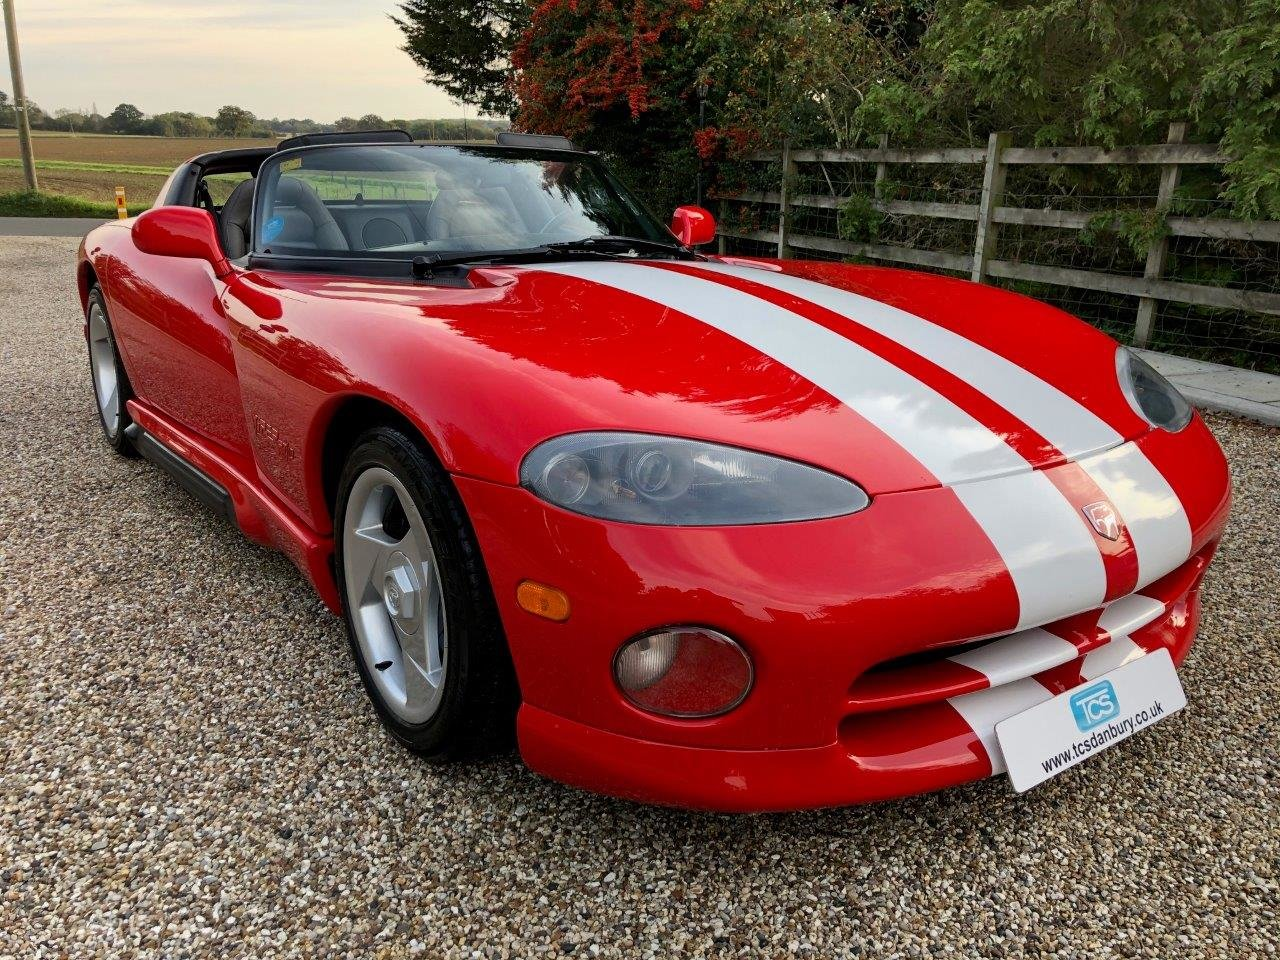 1992 Dodge Viper RT/10 8.0L V10 400bhp 6-Speed Manual For Sale (picture 1 of 6)